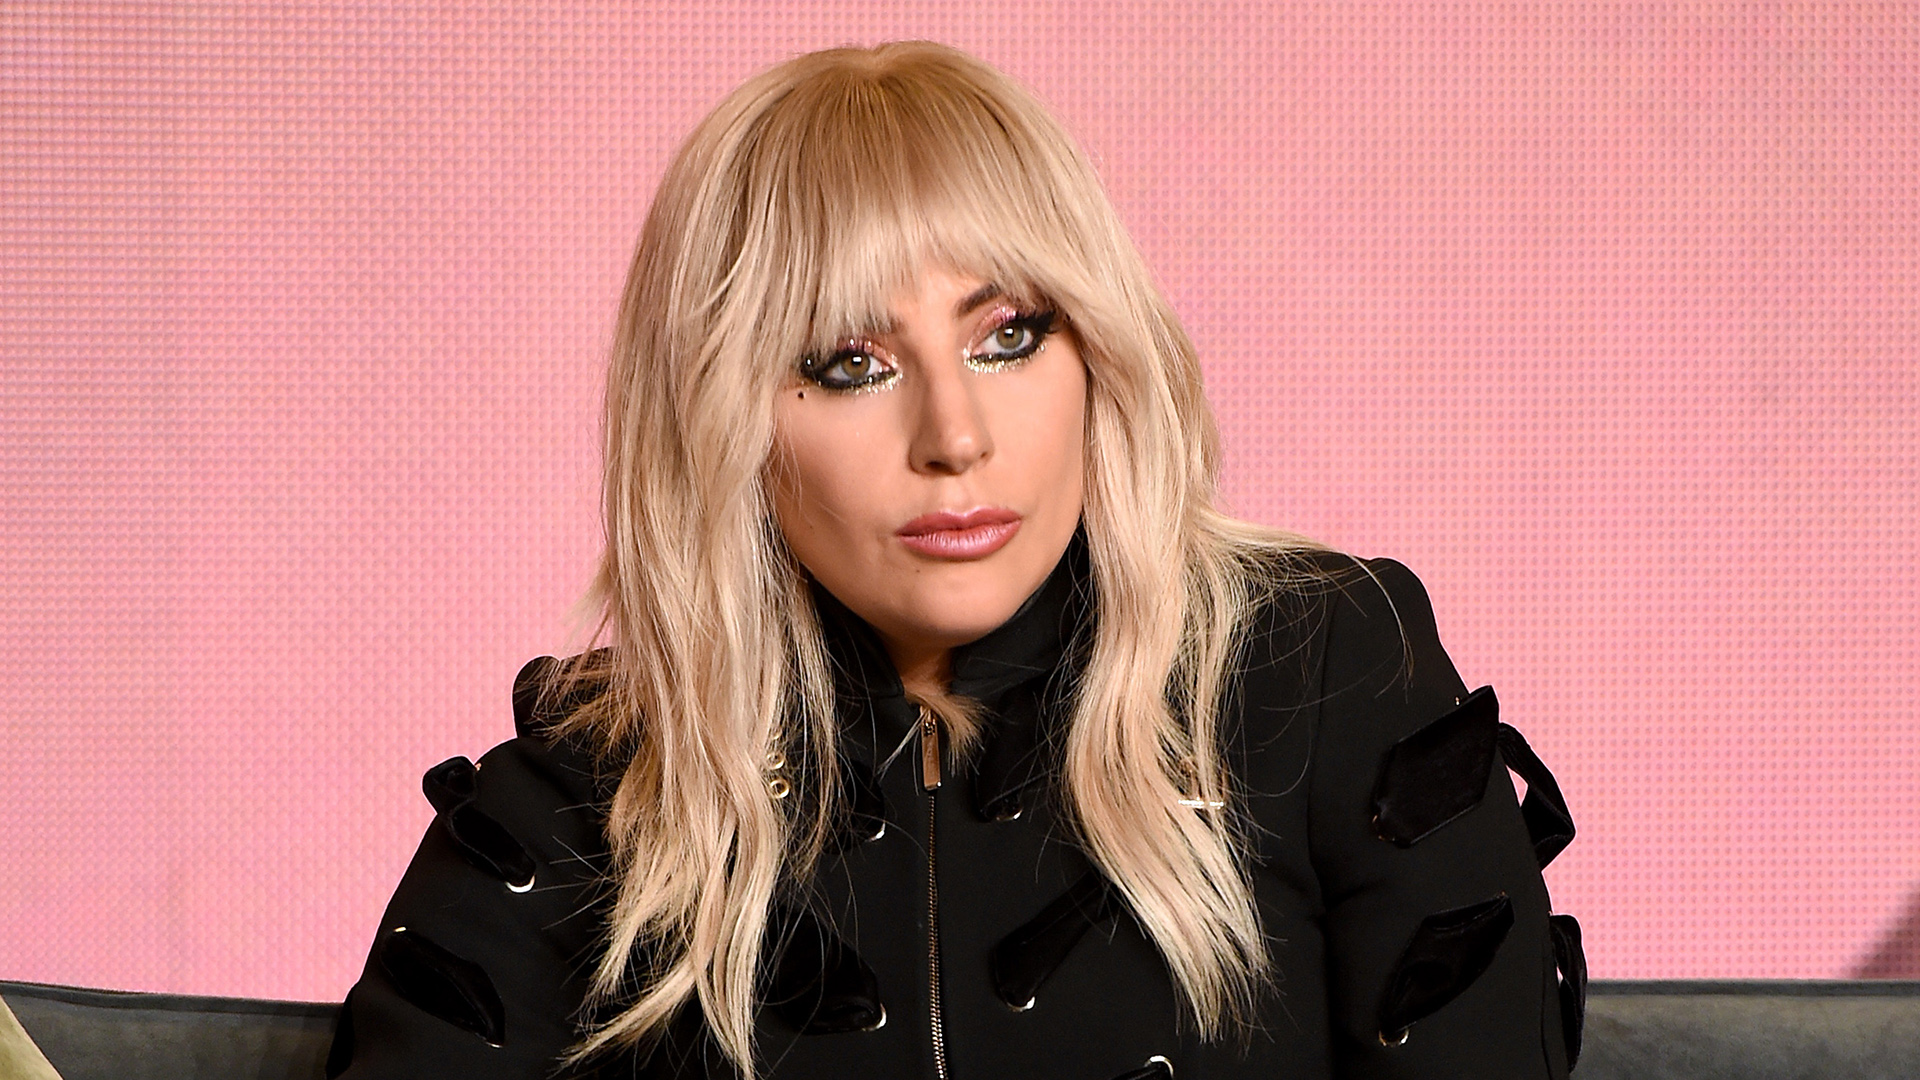 What is fibromyalgia? Chronic pain forces Lady Gaga to pull out of concert